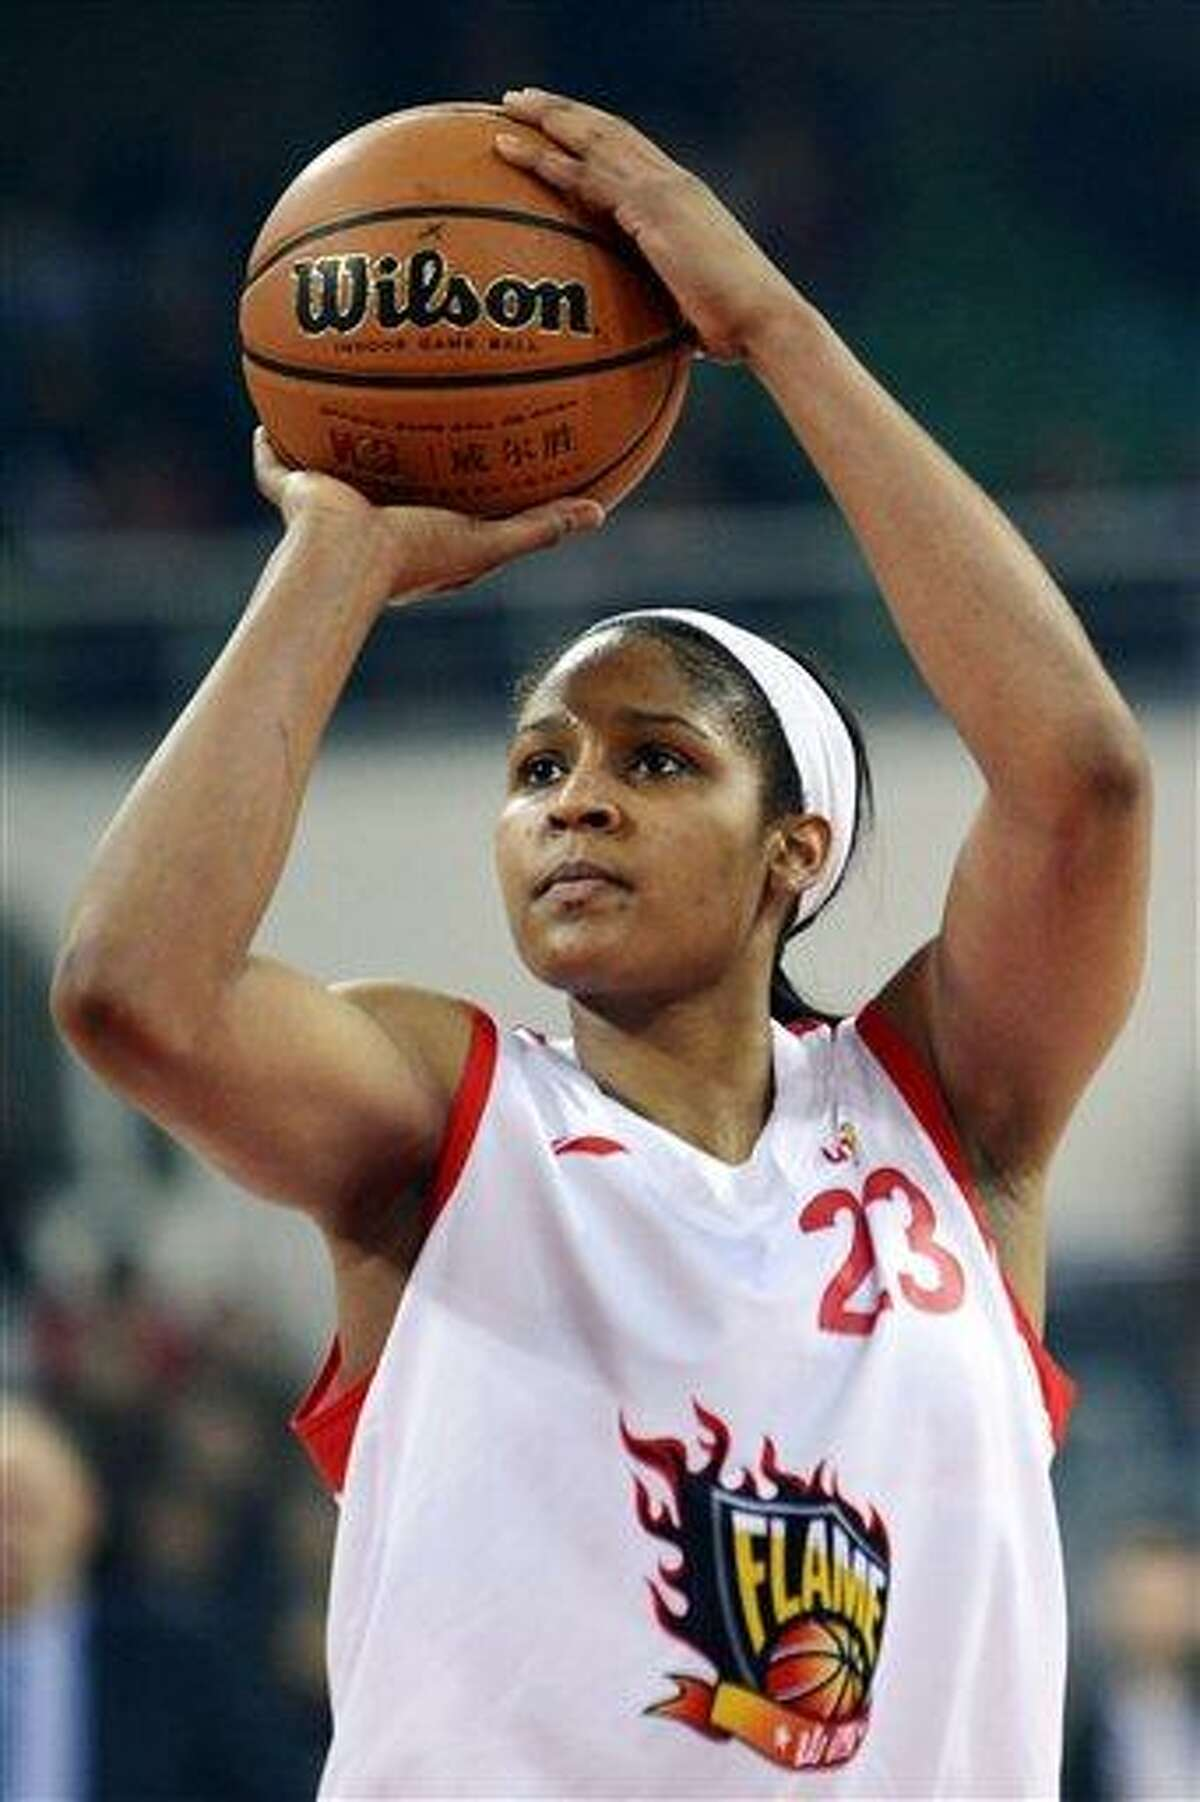 In this Nov. 24, 2012, photo, Shanxi Flame's Maya Moore shoots against the Jiangsu Dragons during a WCBA basketball game in Taiyuan, China. While her Minnesota Lynx team awaits the return of WNBA training camp in May, Moore is averaging 45 points a game and earning mid-six figures for the Flame, helping bring new fans to the women's game in a baseball crazed nation. (AP Photo/CHINATOPIX) CHINA OUT